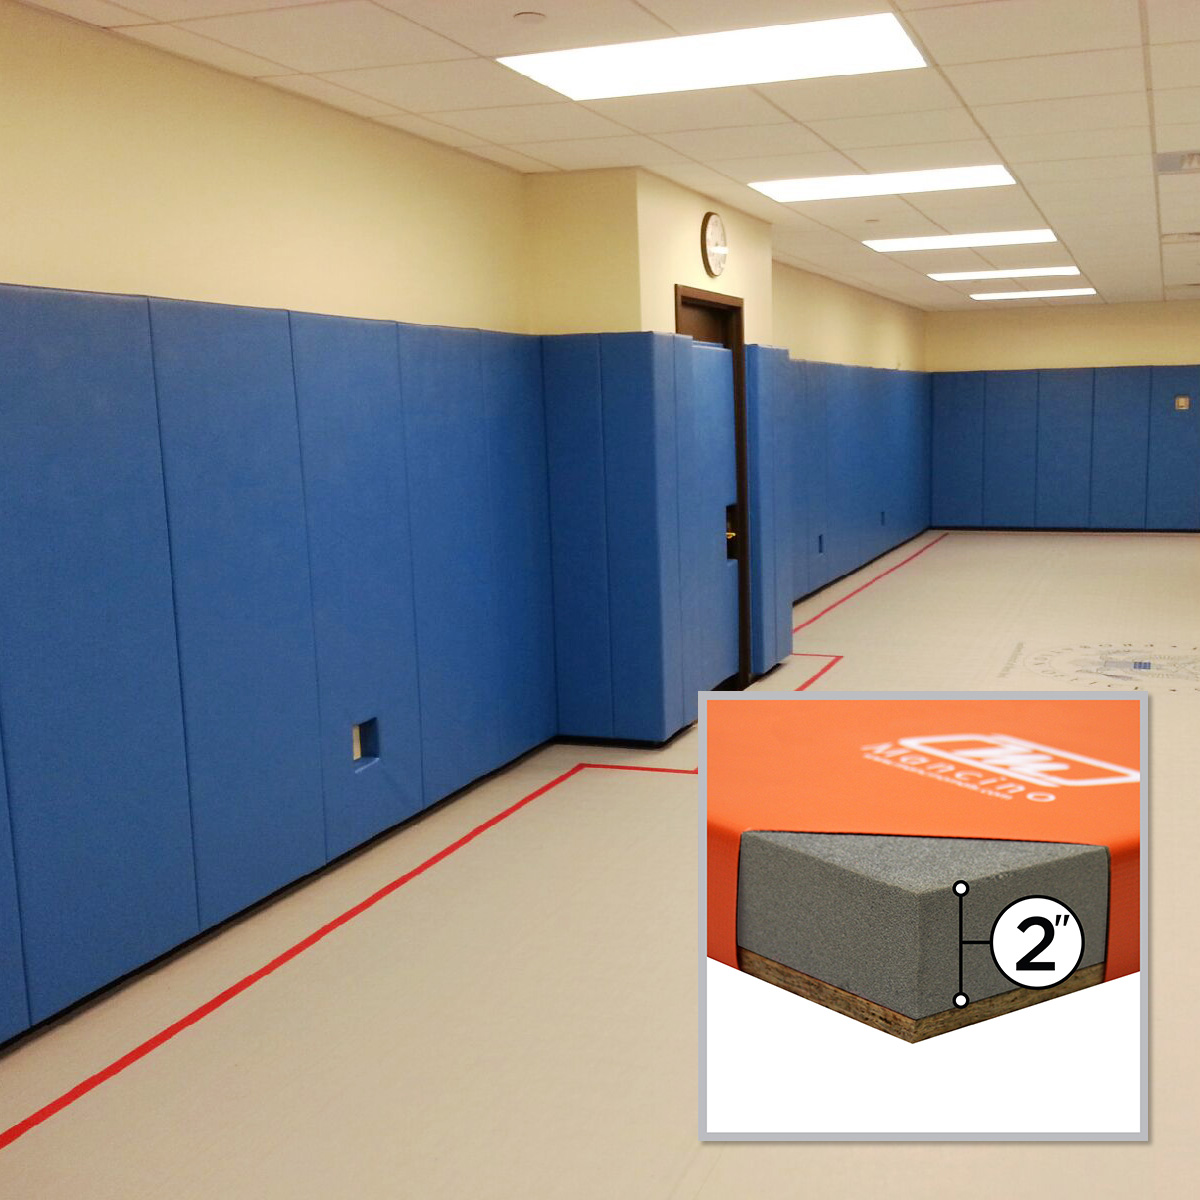 US probations room with padding for exercise champion blue